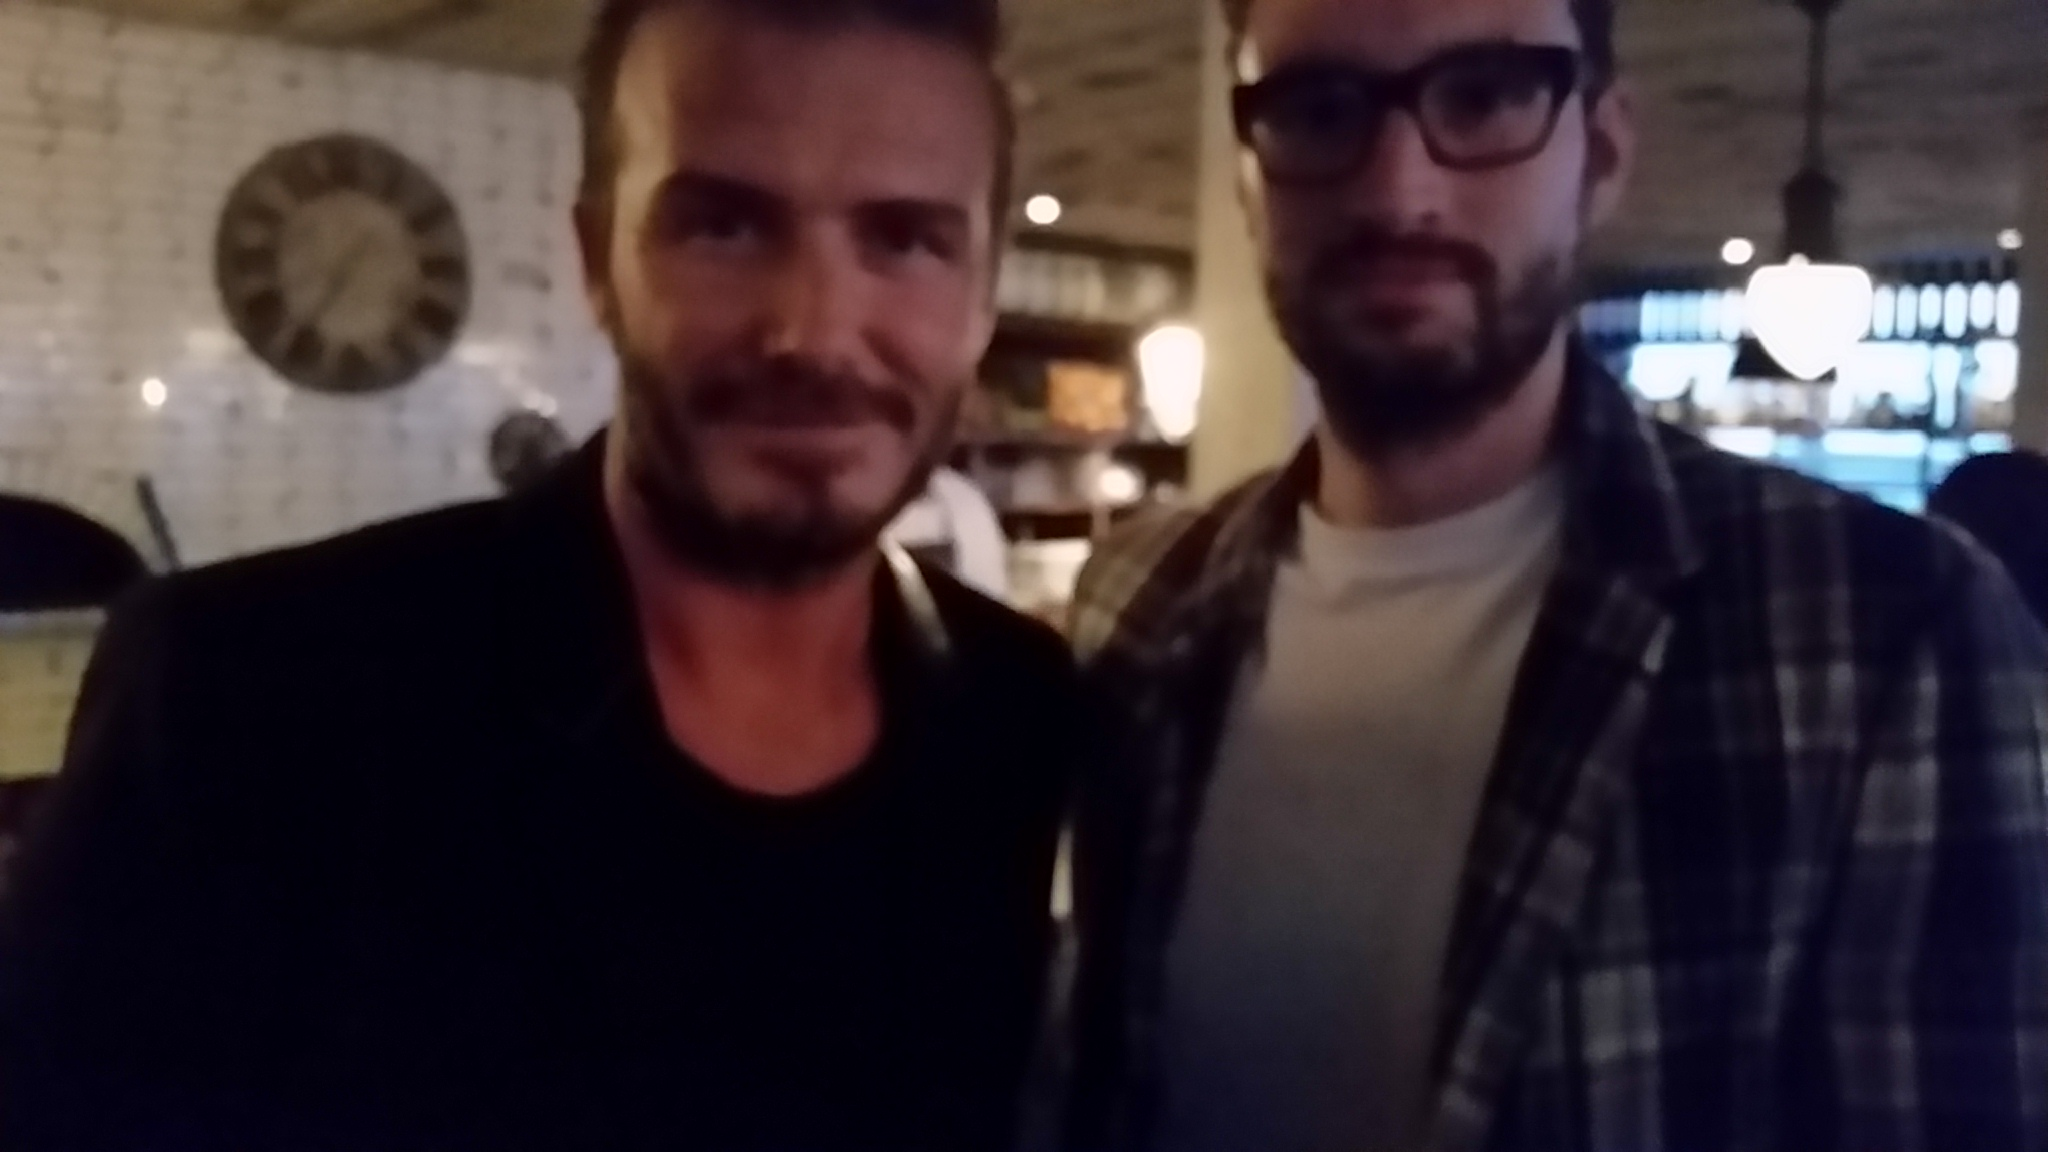 e94c2be92f David Beckham HM Swimwear launch at Shoreditch House - Maketh-The ...